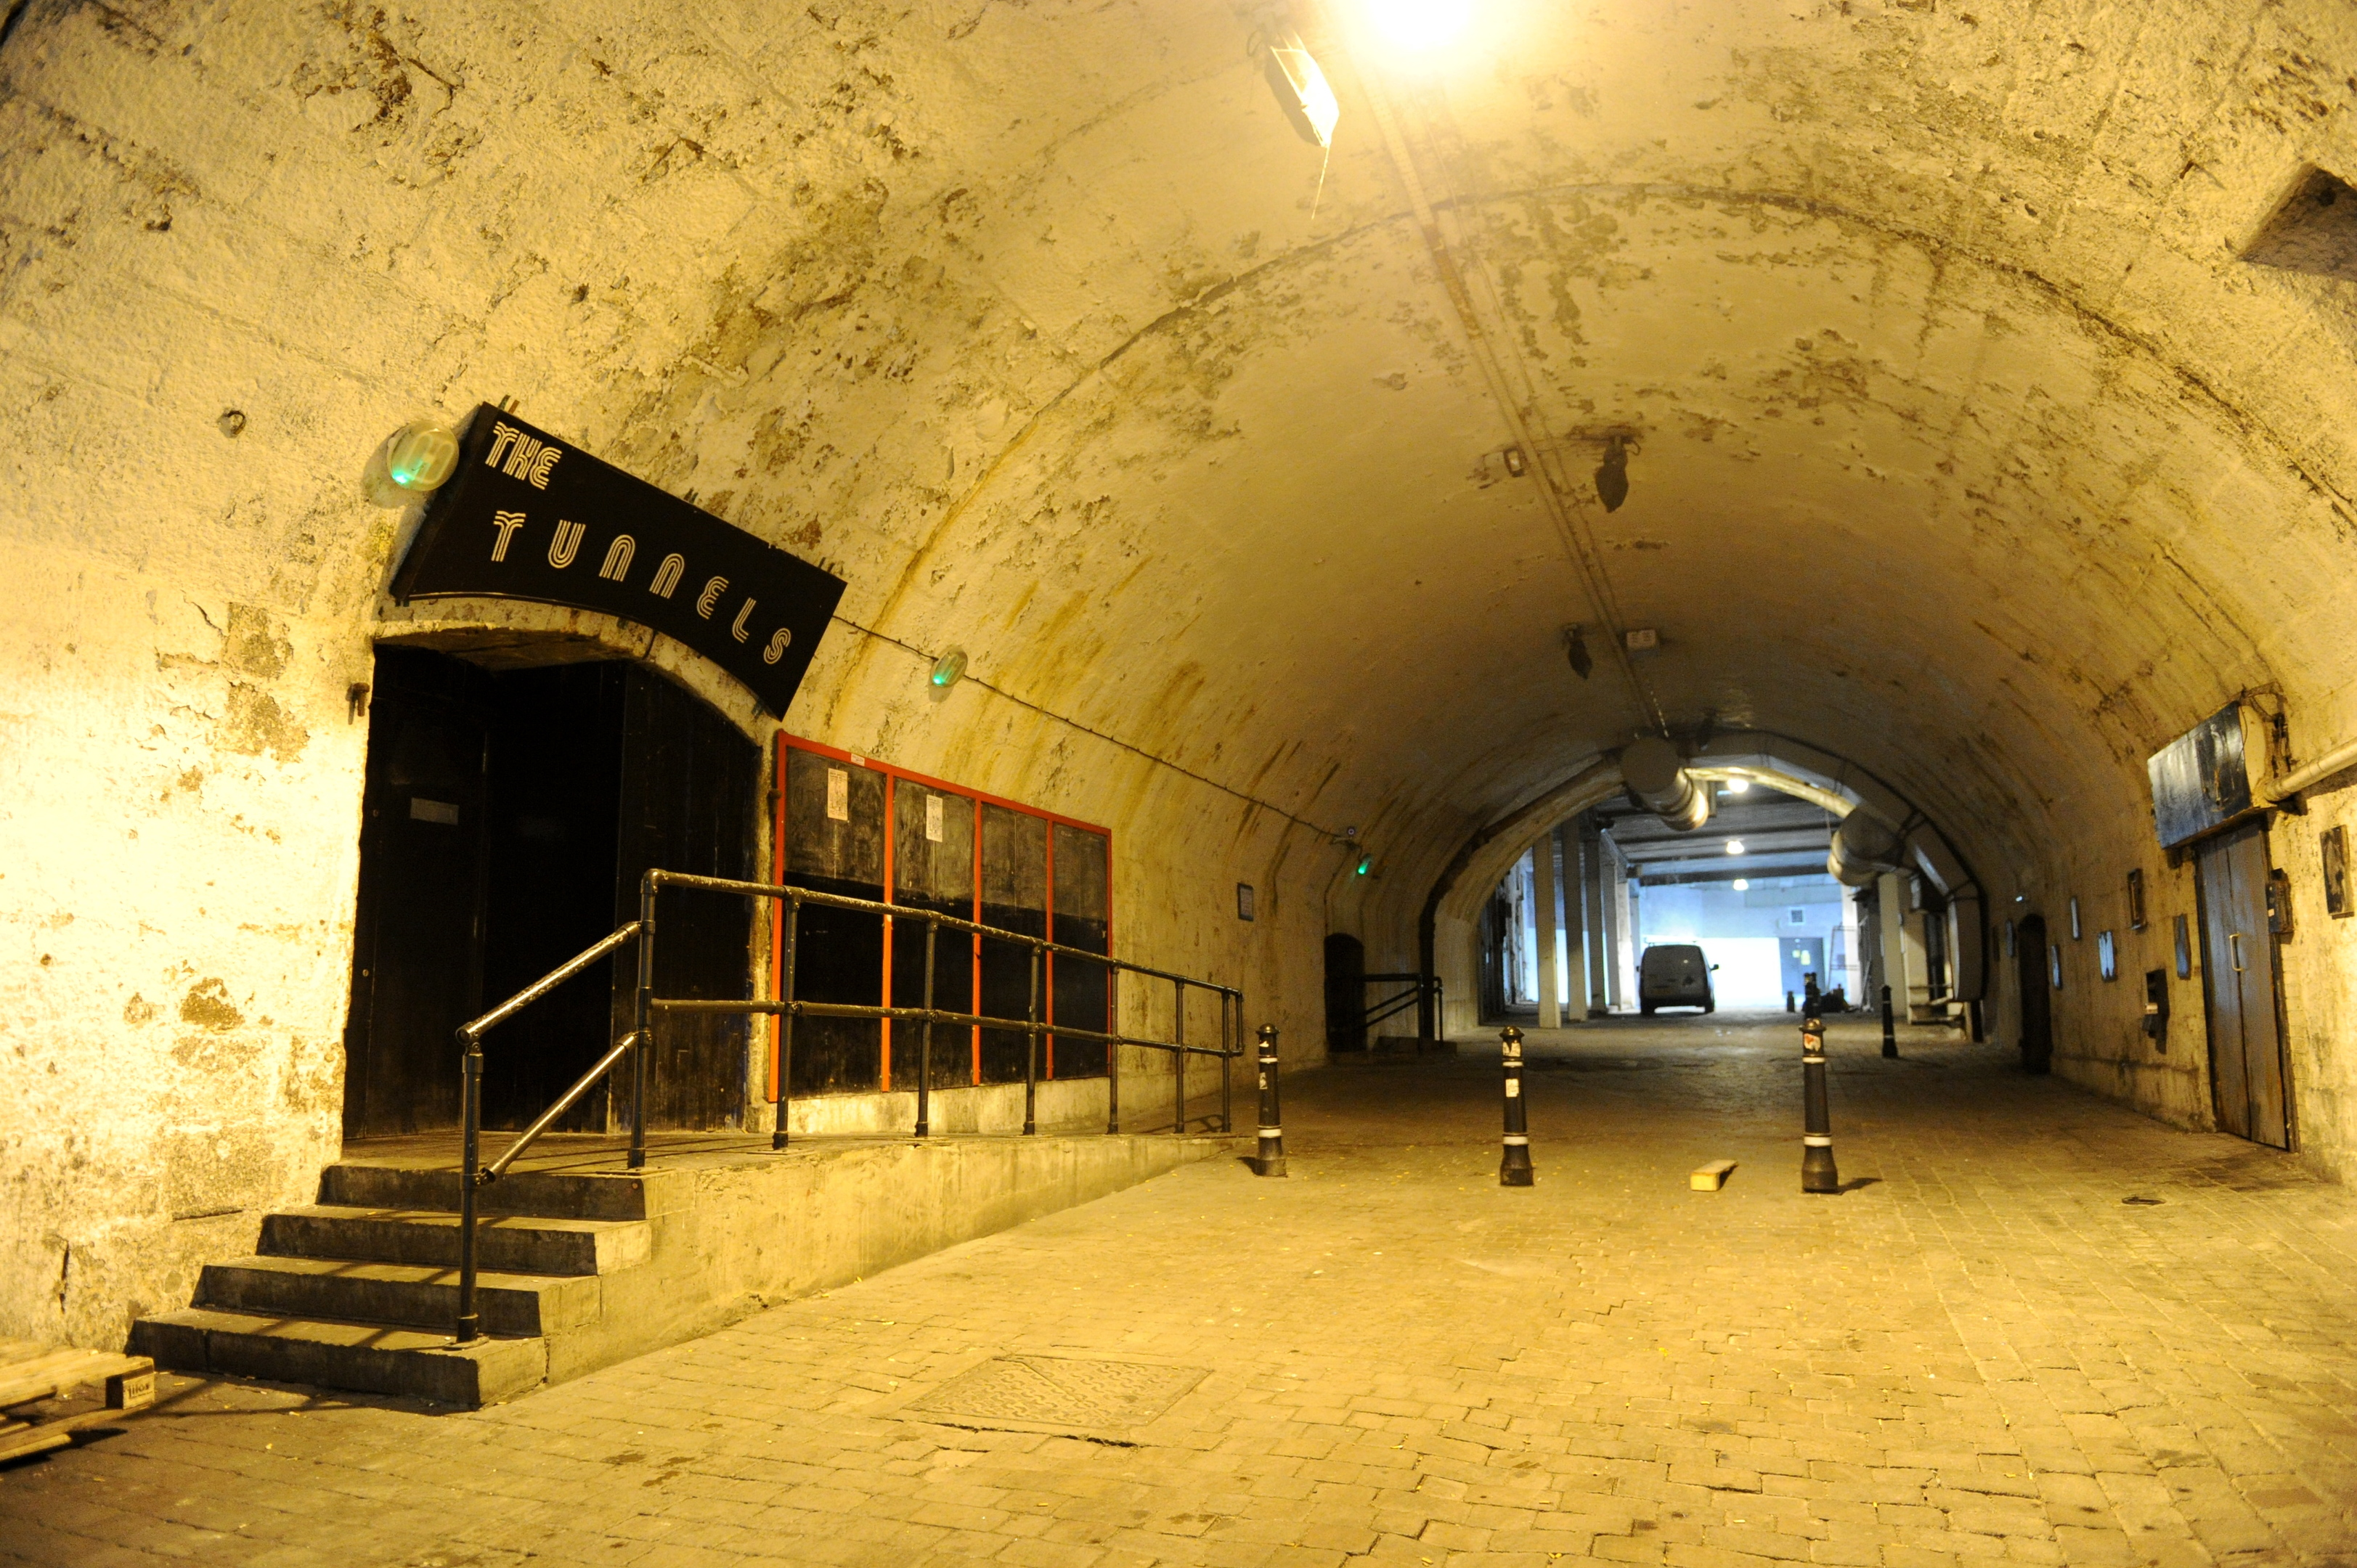 The Tunnels is one of the venues chosen for the 2nd Aberdeen Film festival.